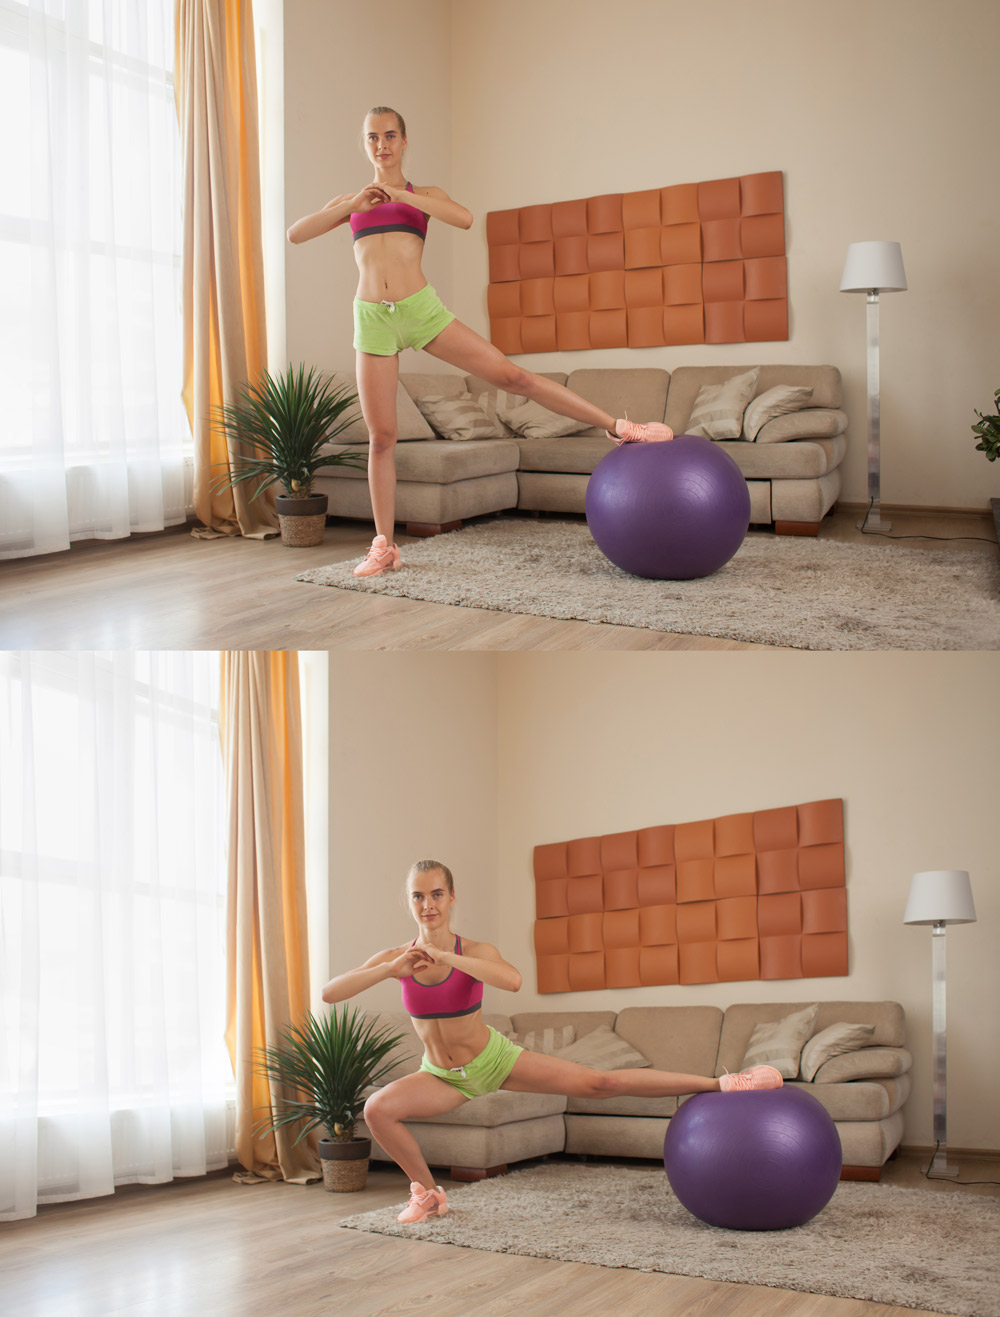 Fitness ball side lunge exercise